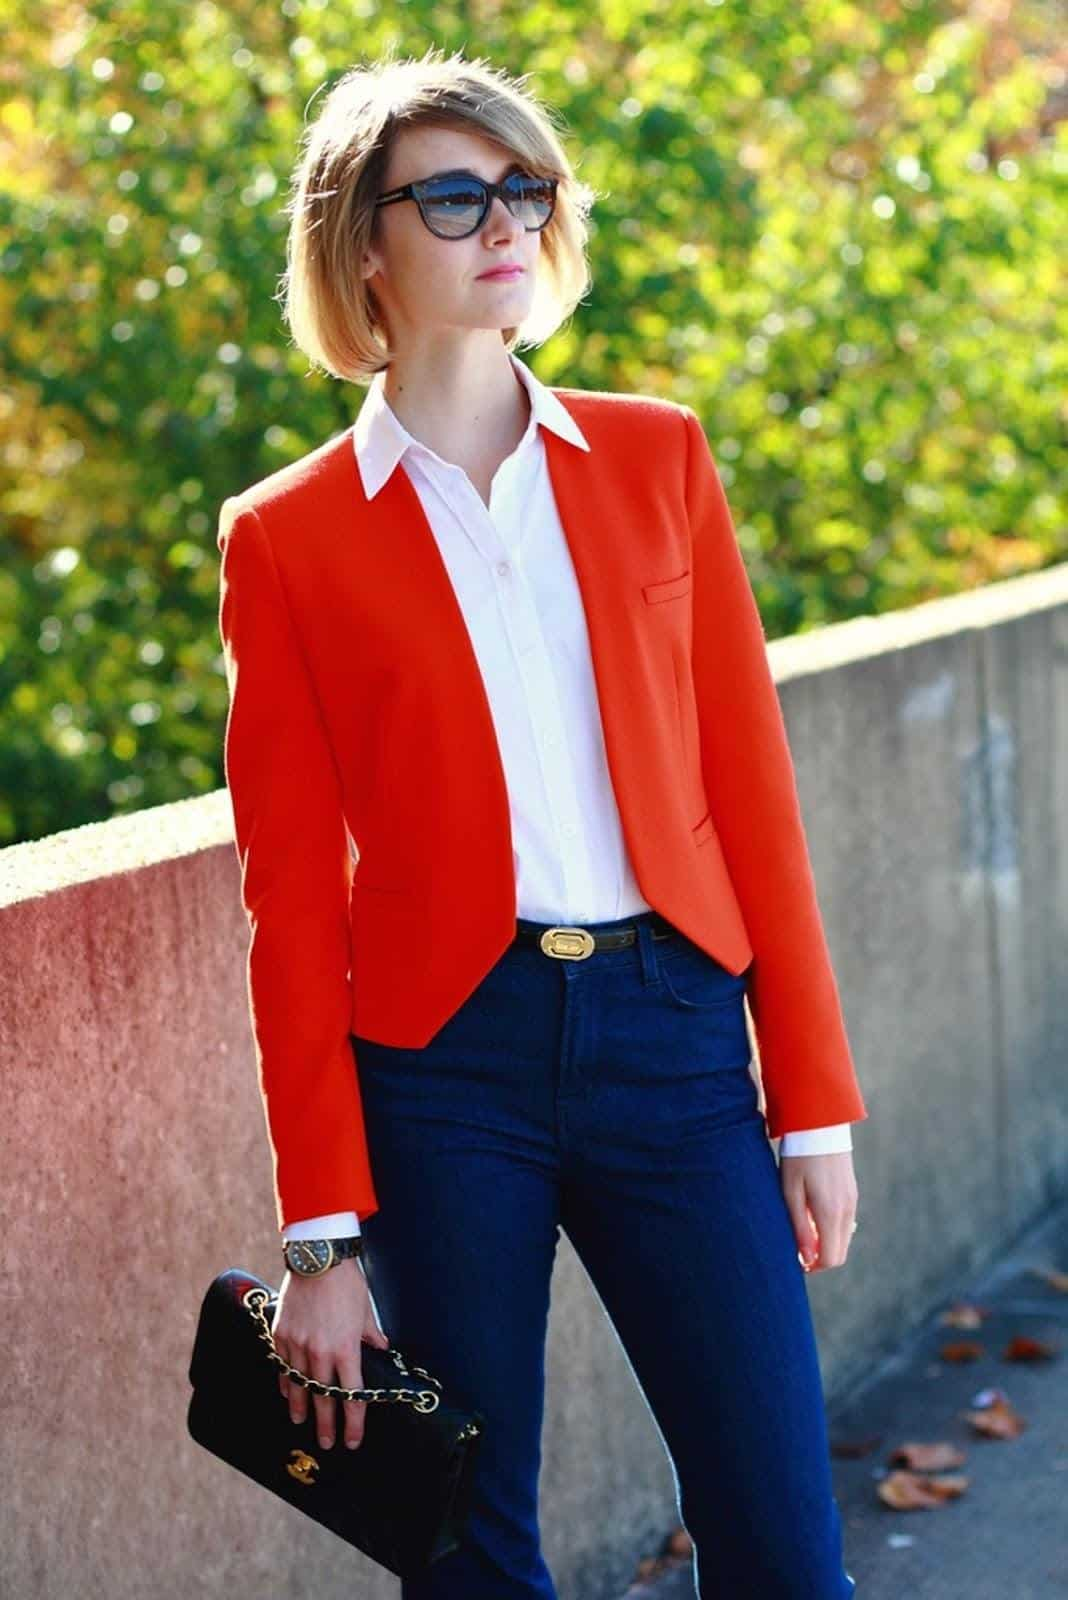 Red Outfits For Women 18 Chic Ways To Wear Red Outfits